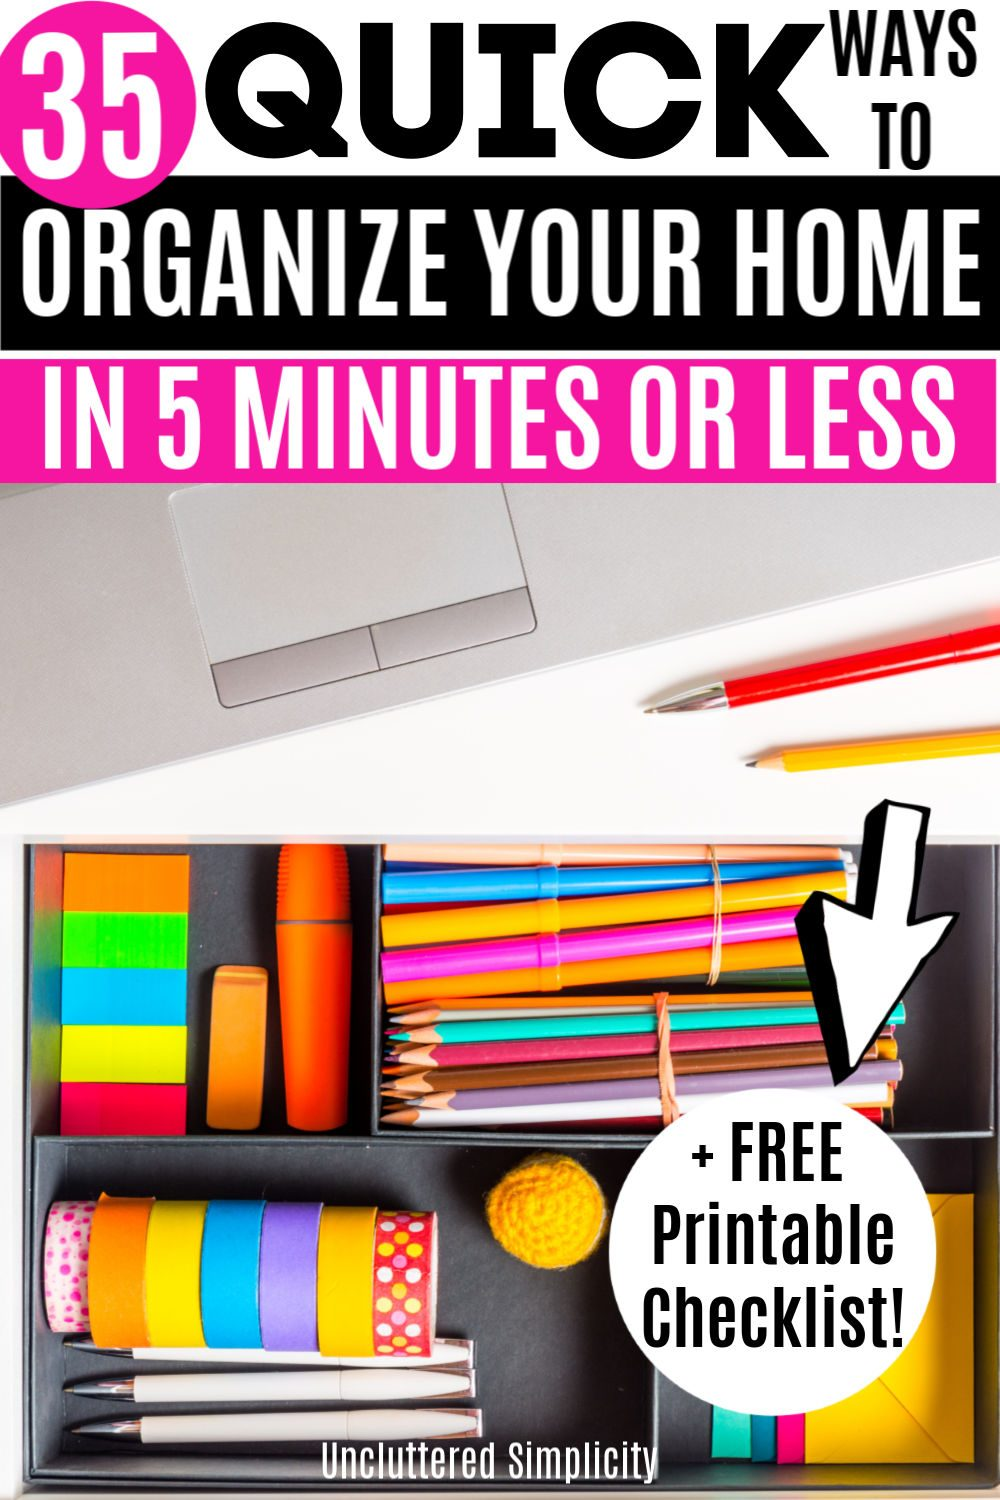 Want to declutter and organize your home? Start small with these 35 quick home organization ideas. #unclutteredsimplicity